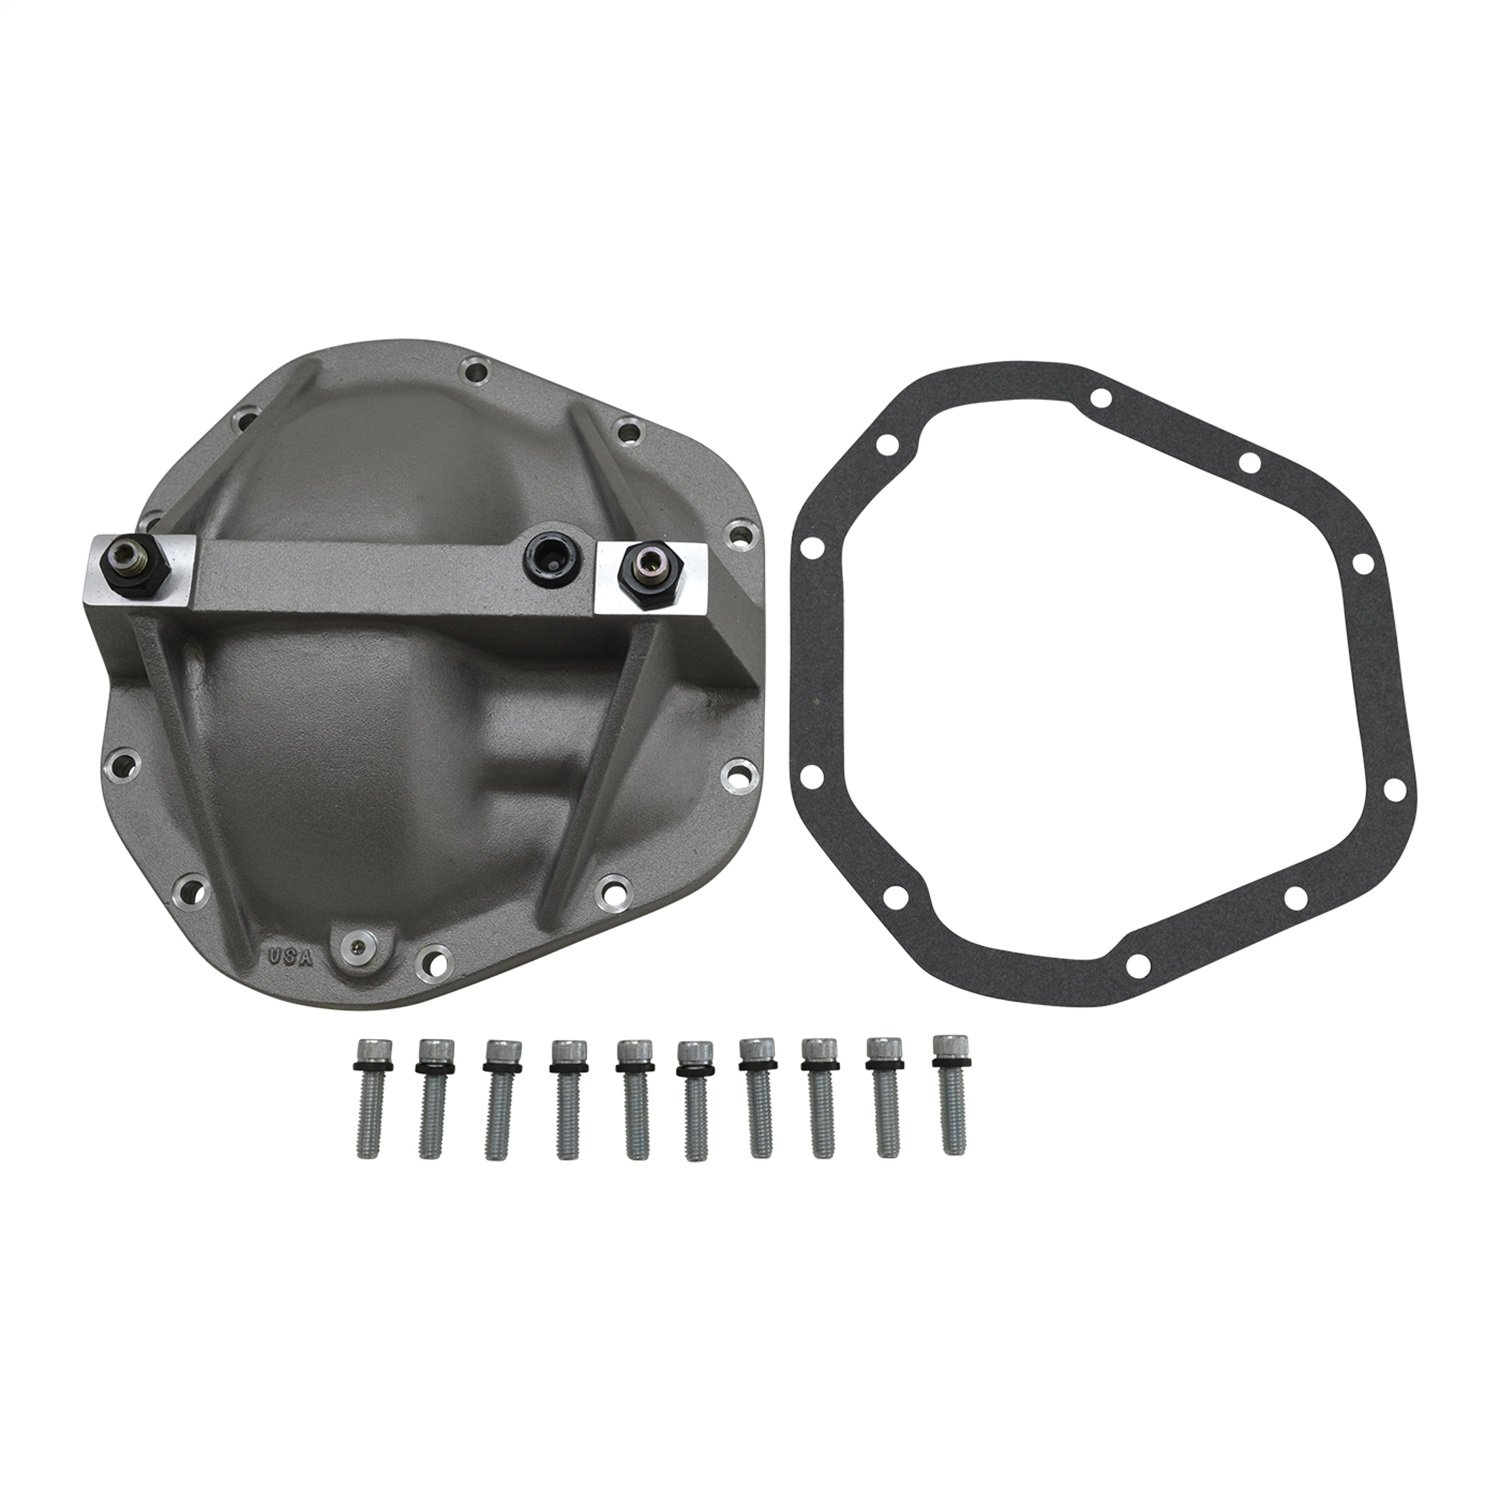 Yukon (YP C3-D70) Aluminum Replacement Girdle Cover for Dana 70 TA HD Differential